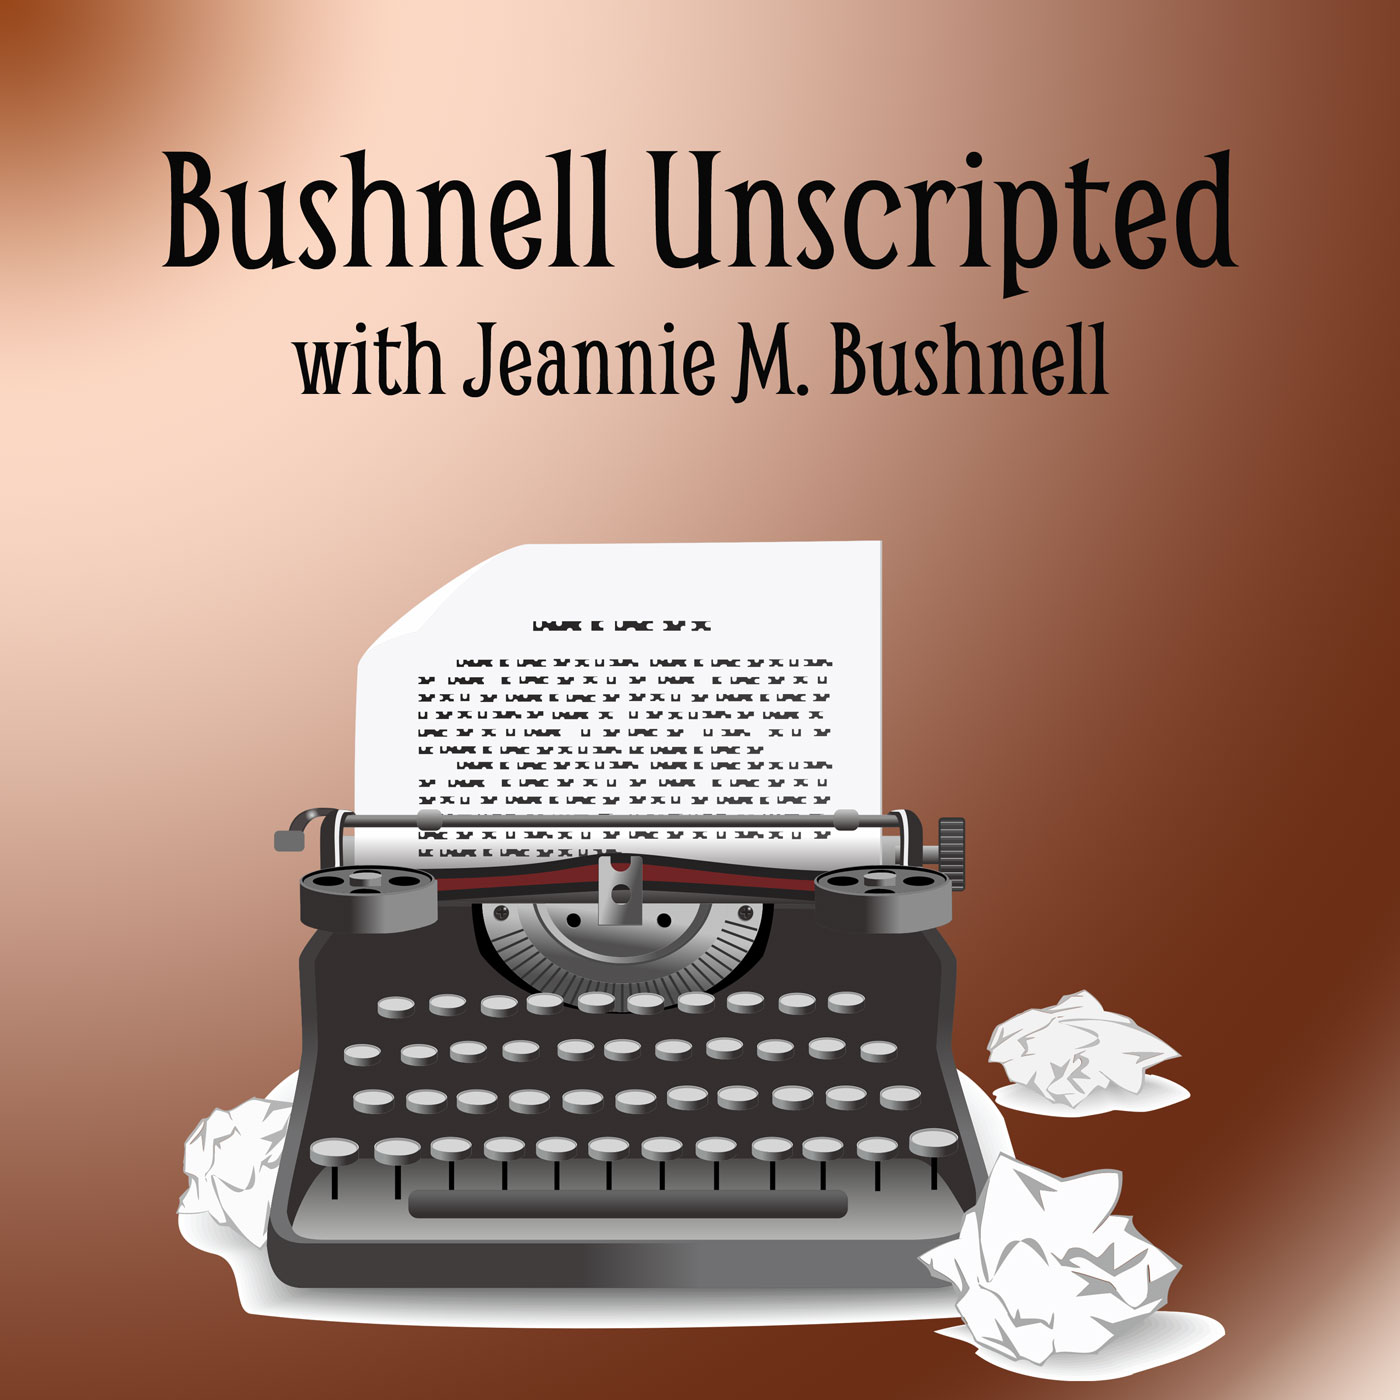 Bushnell Unscripted Podcast at iTunes